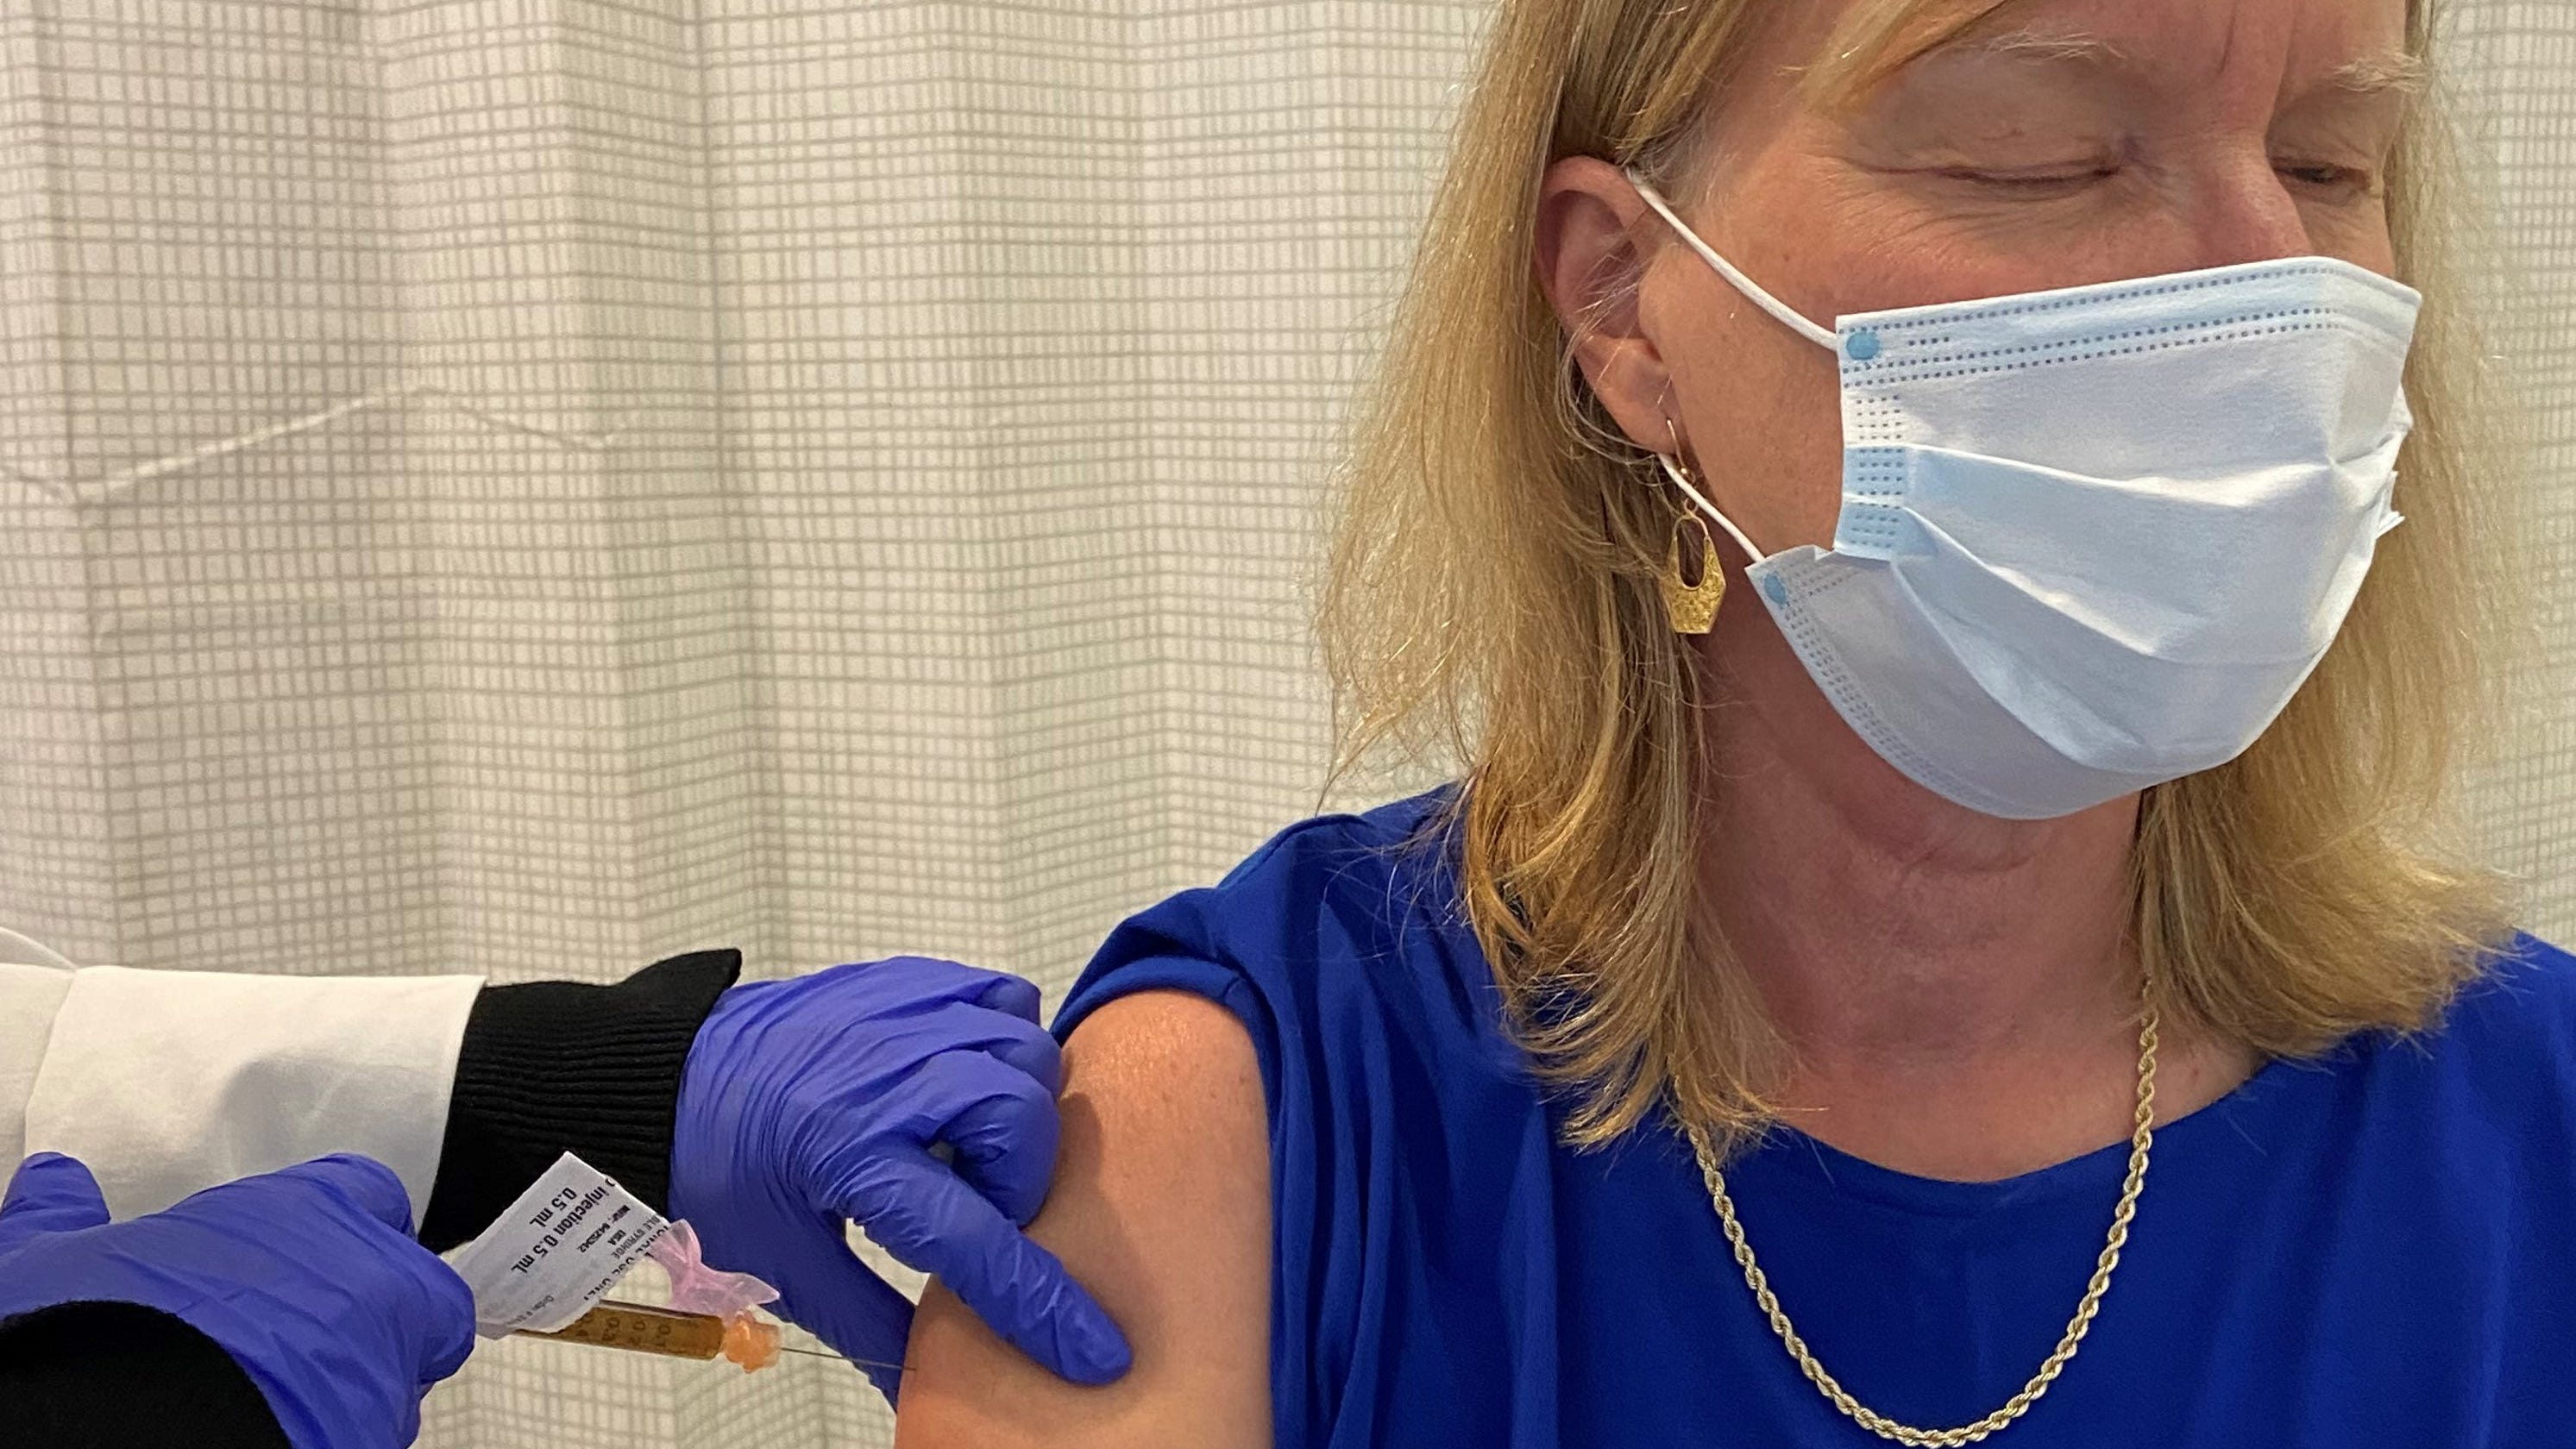 I volunteered for a COVID-19 vaccine trial in New Jersey: Here's what it's been like since the shot